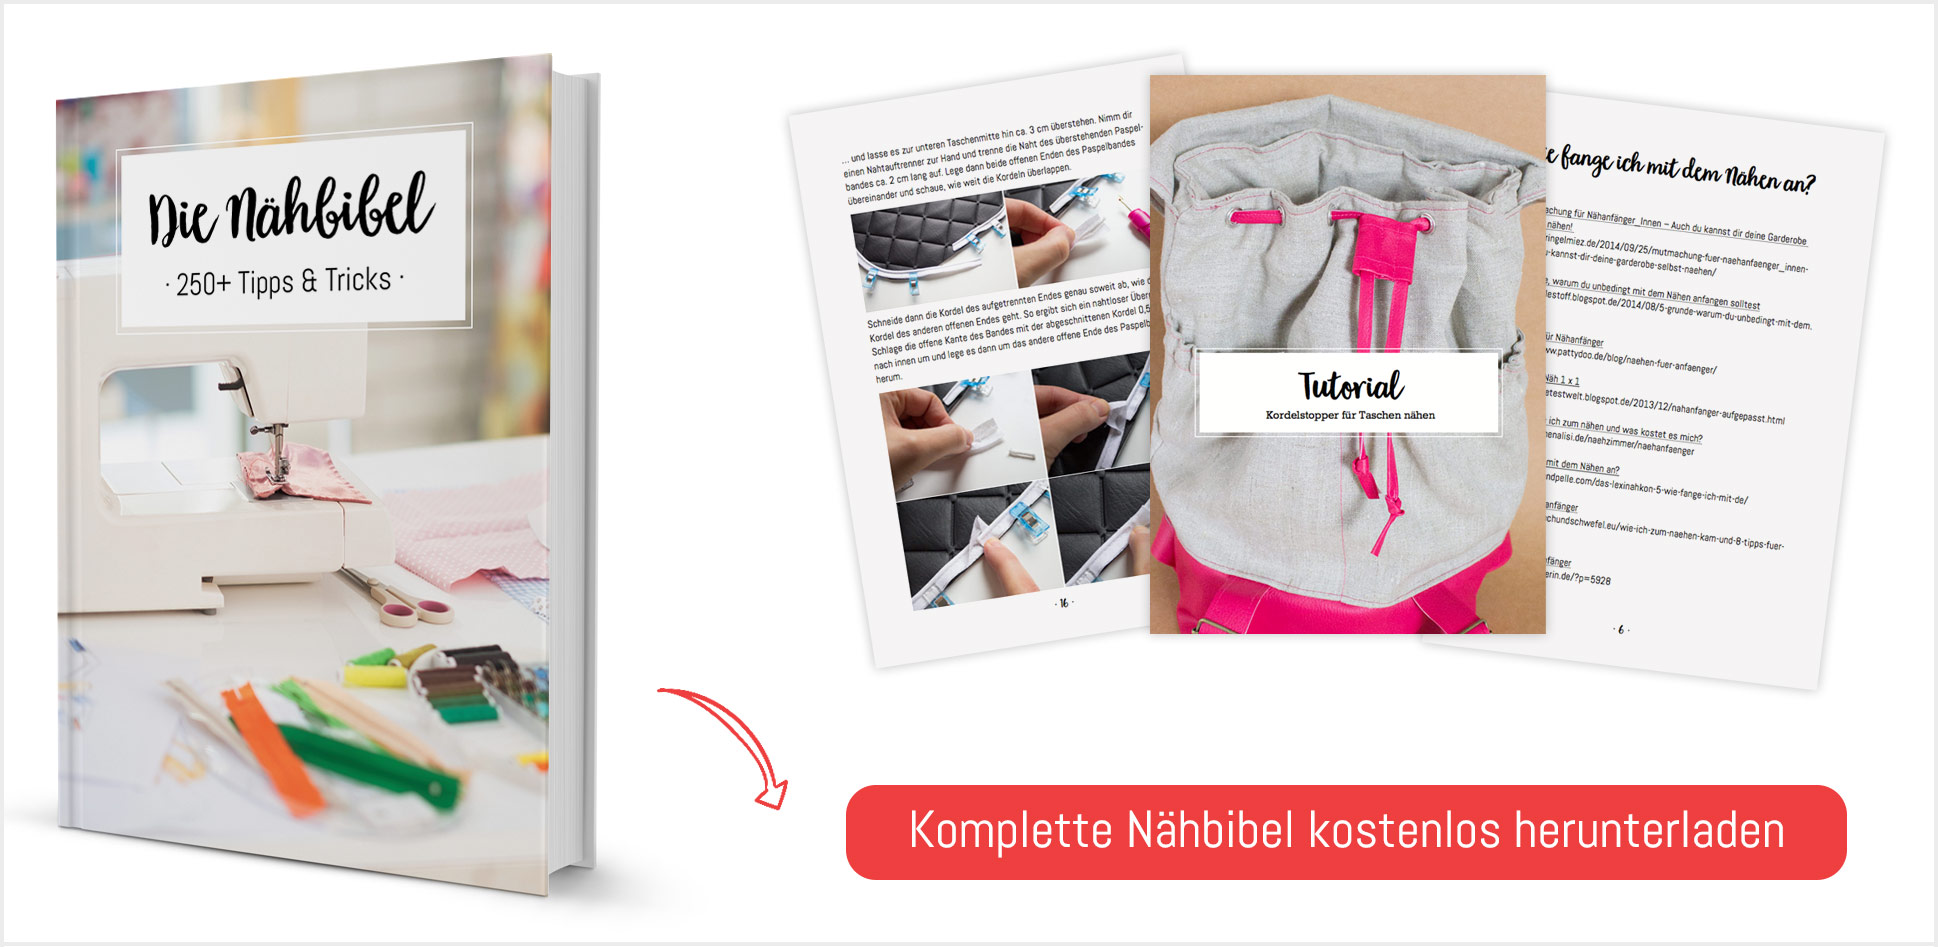 Nähbibel: Kostenloser Download